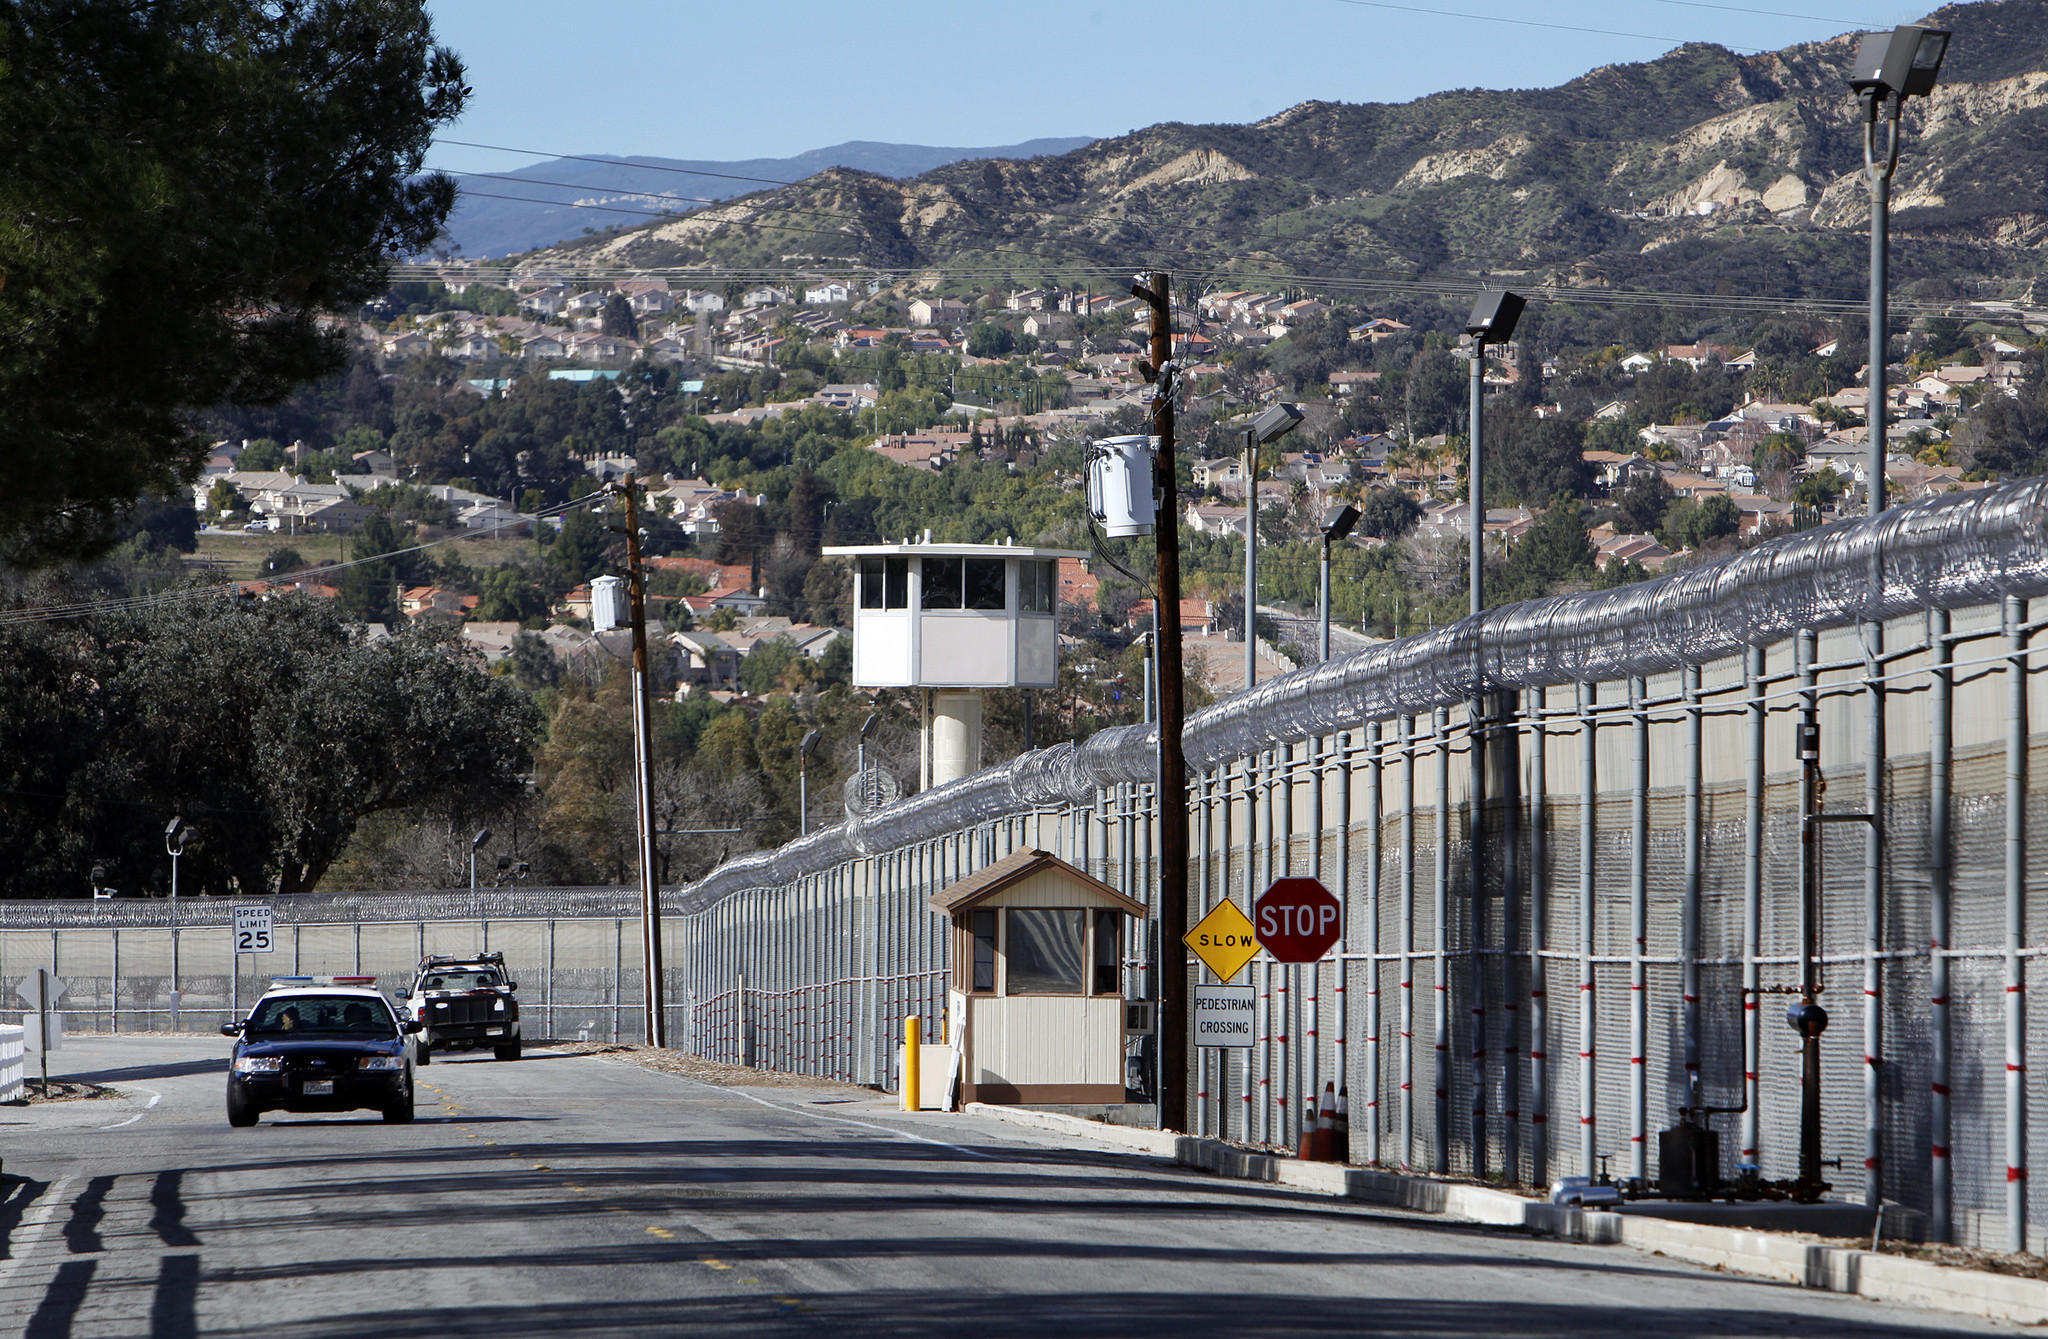 The entrance to the Pitchess Detention Center, a Los Angeles County jail complex in Castaic that includes the North County Correctional Facility. (Al Seib / Los Angeles Times)